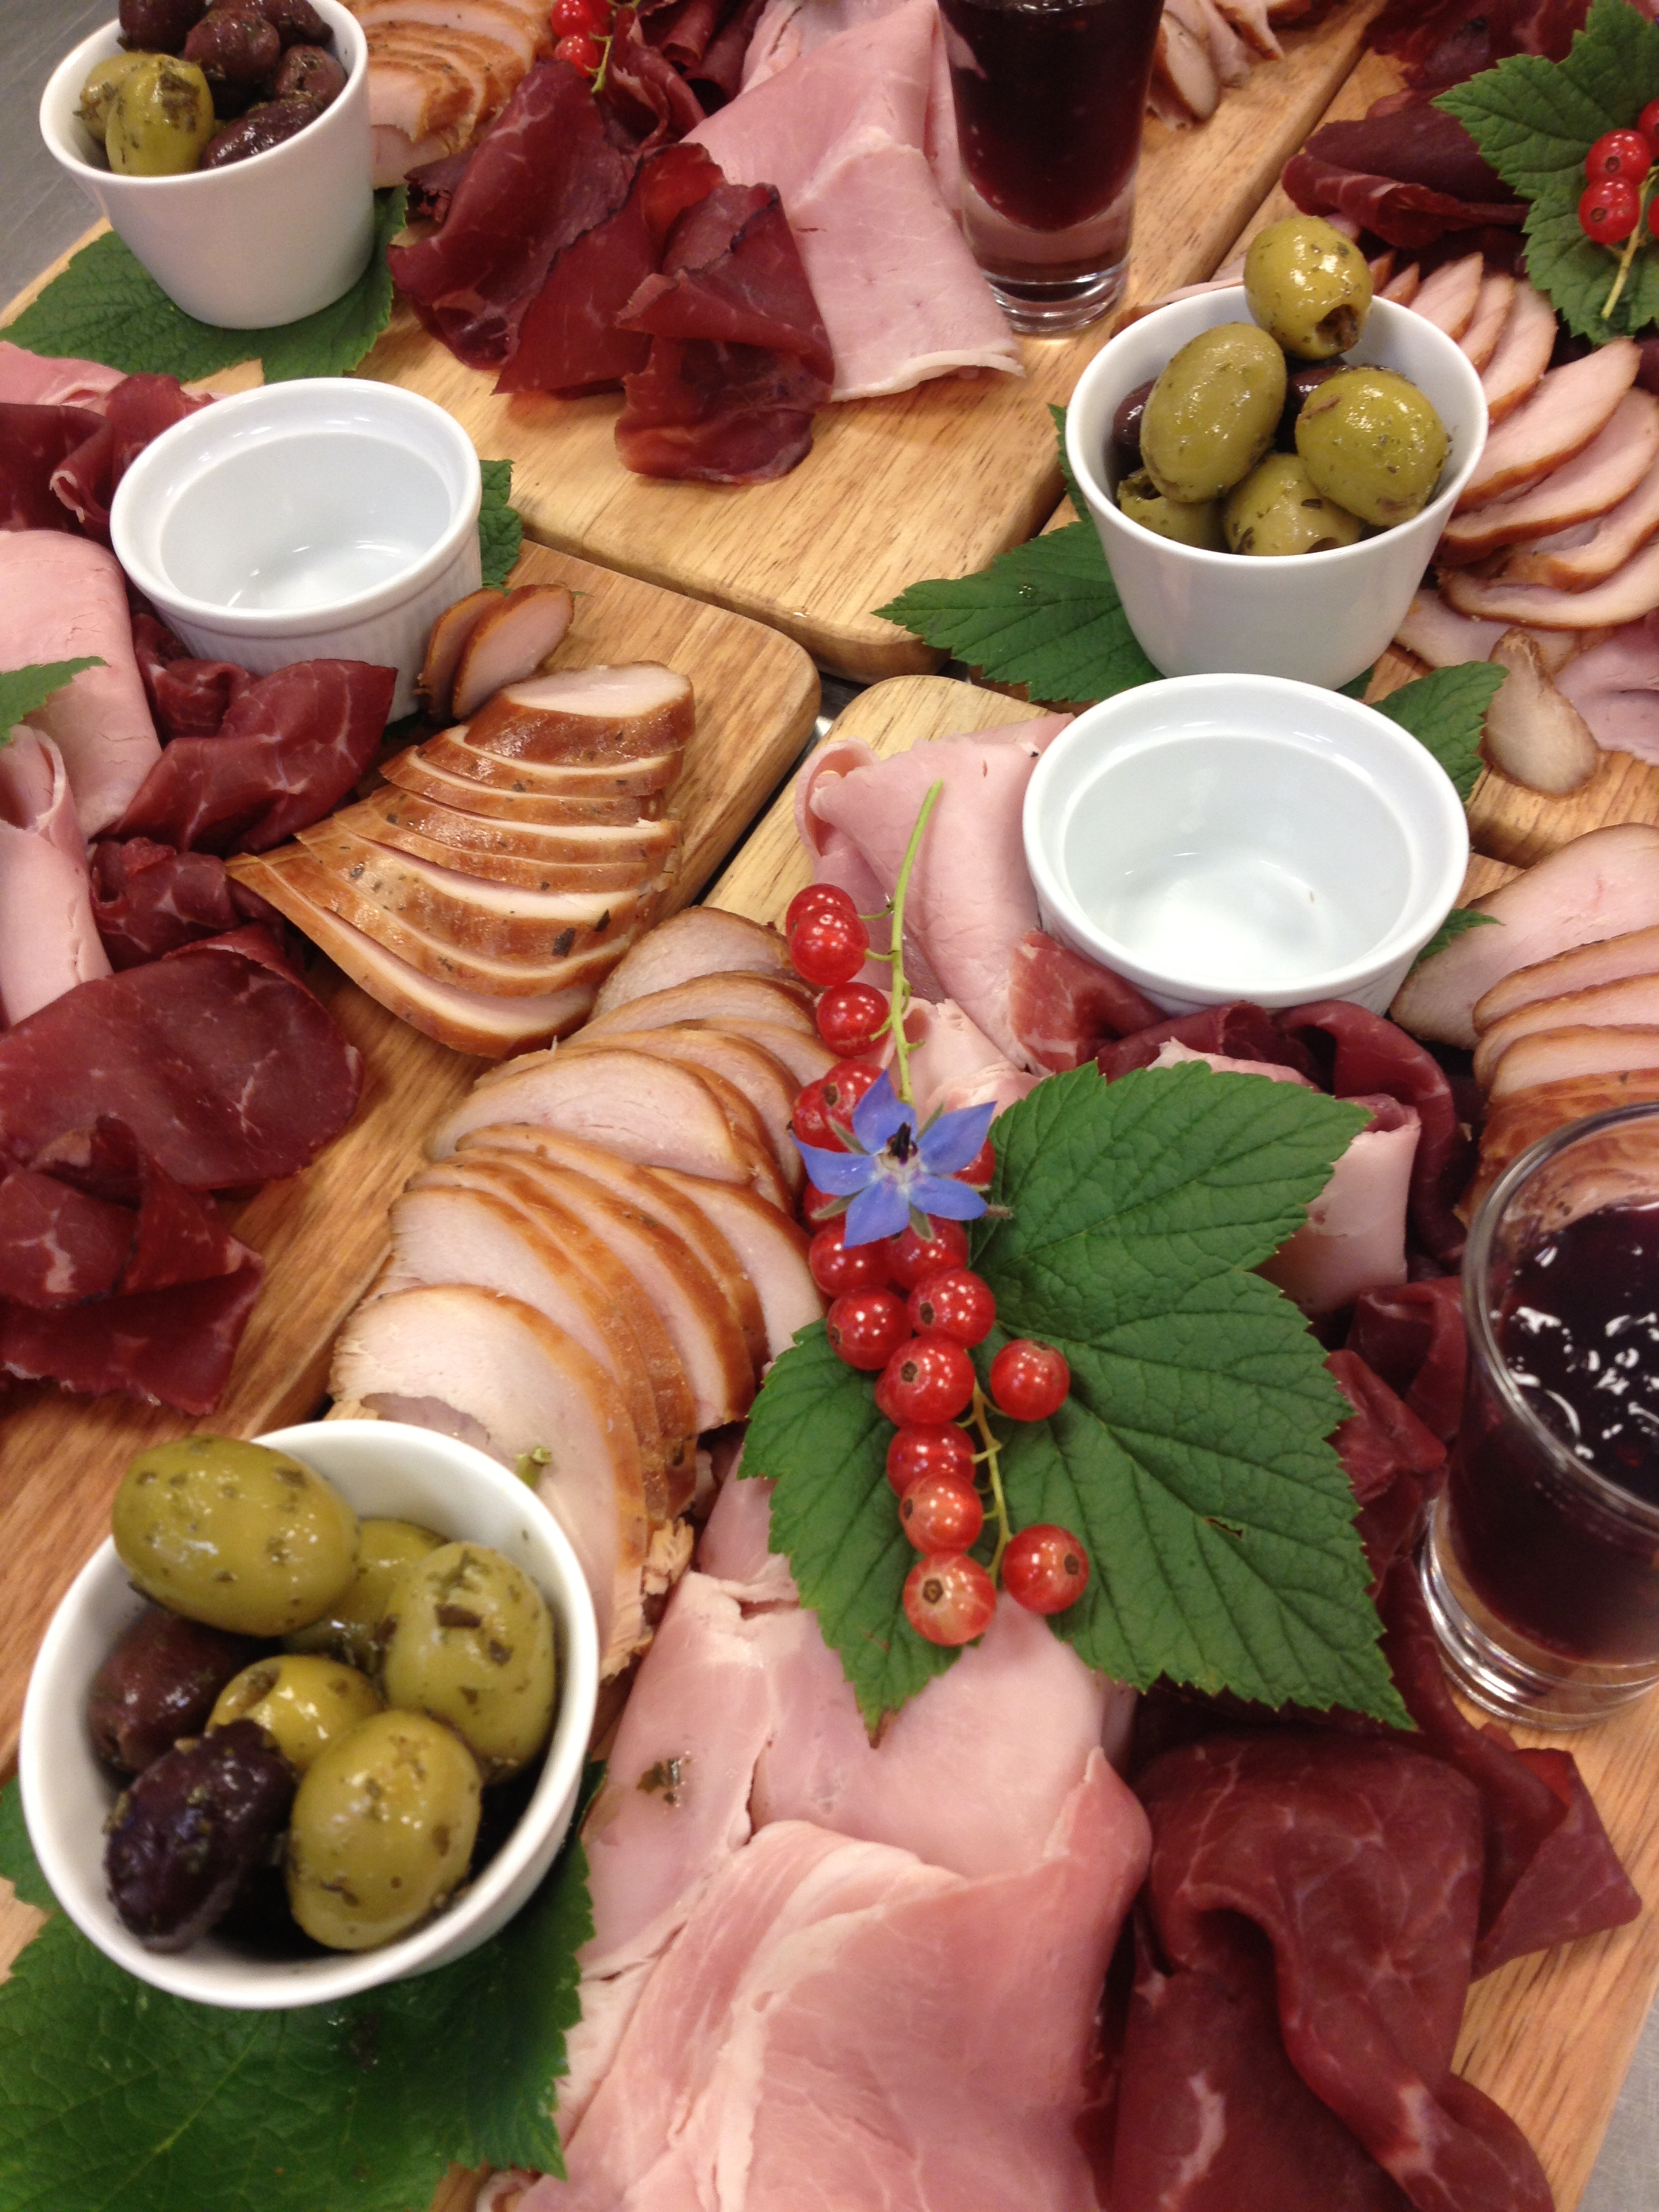 Meat platters for sharing